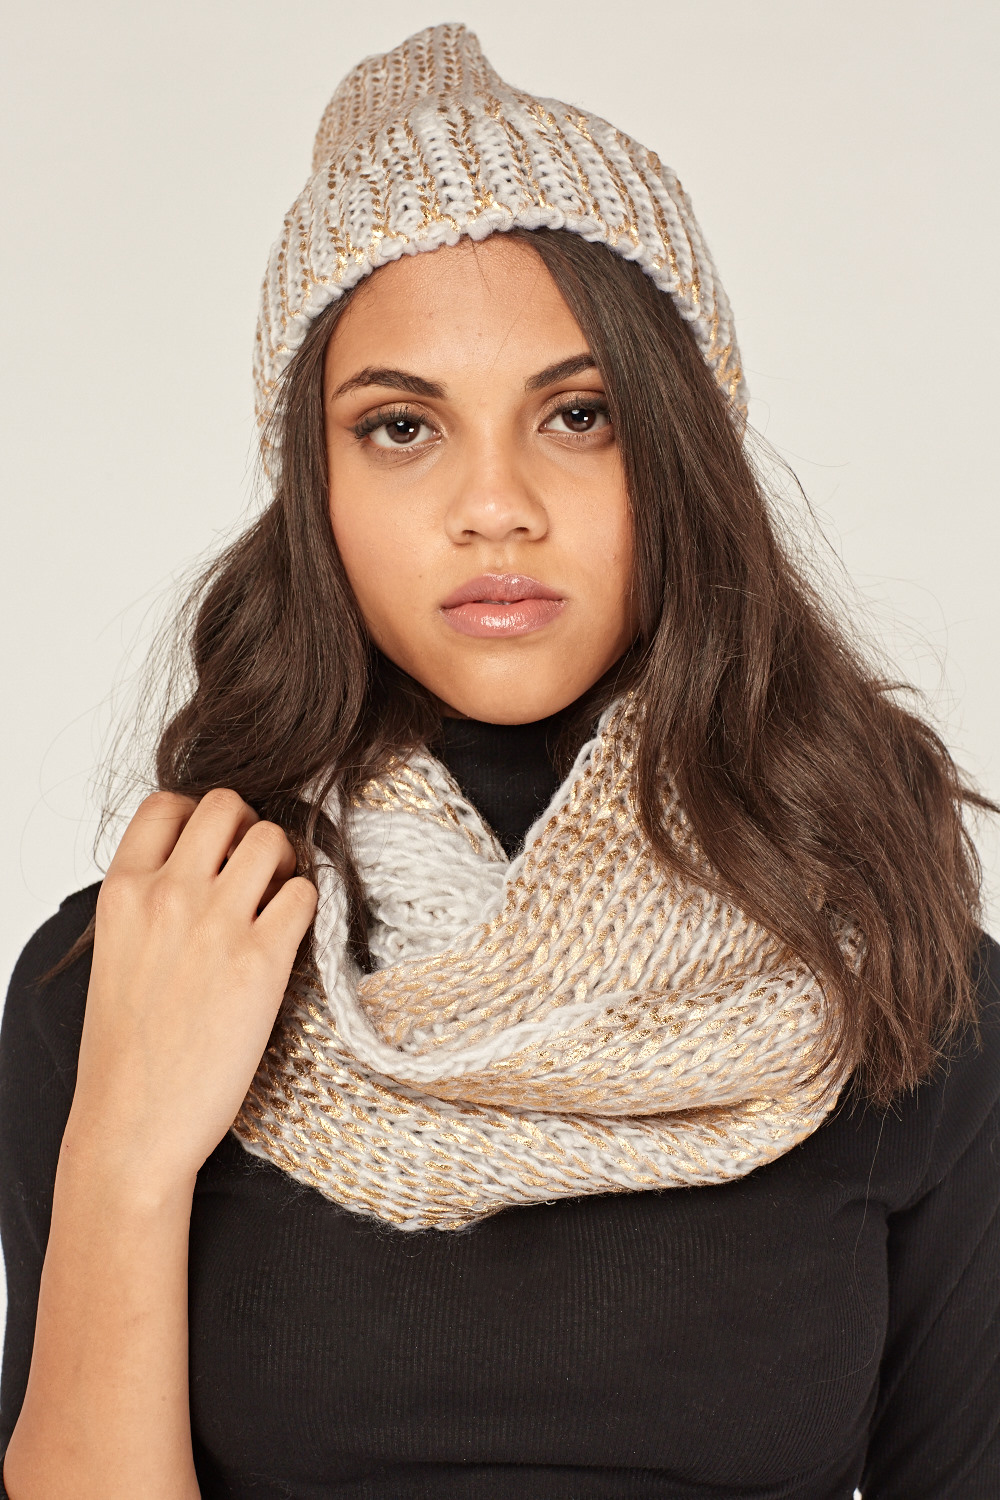 10d3c2f0556 Metallic Knitted Snood And Hat Set - 7 Colours - Just £5